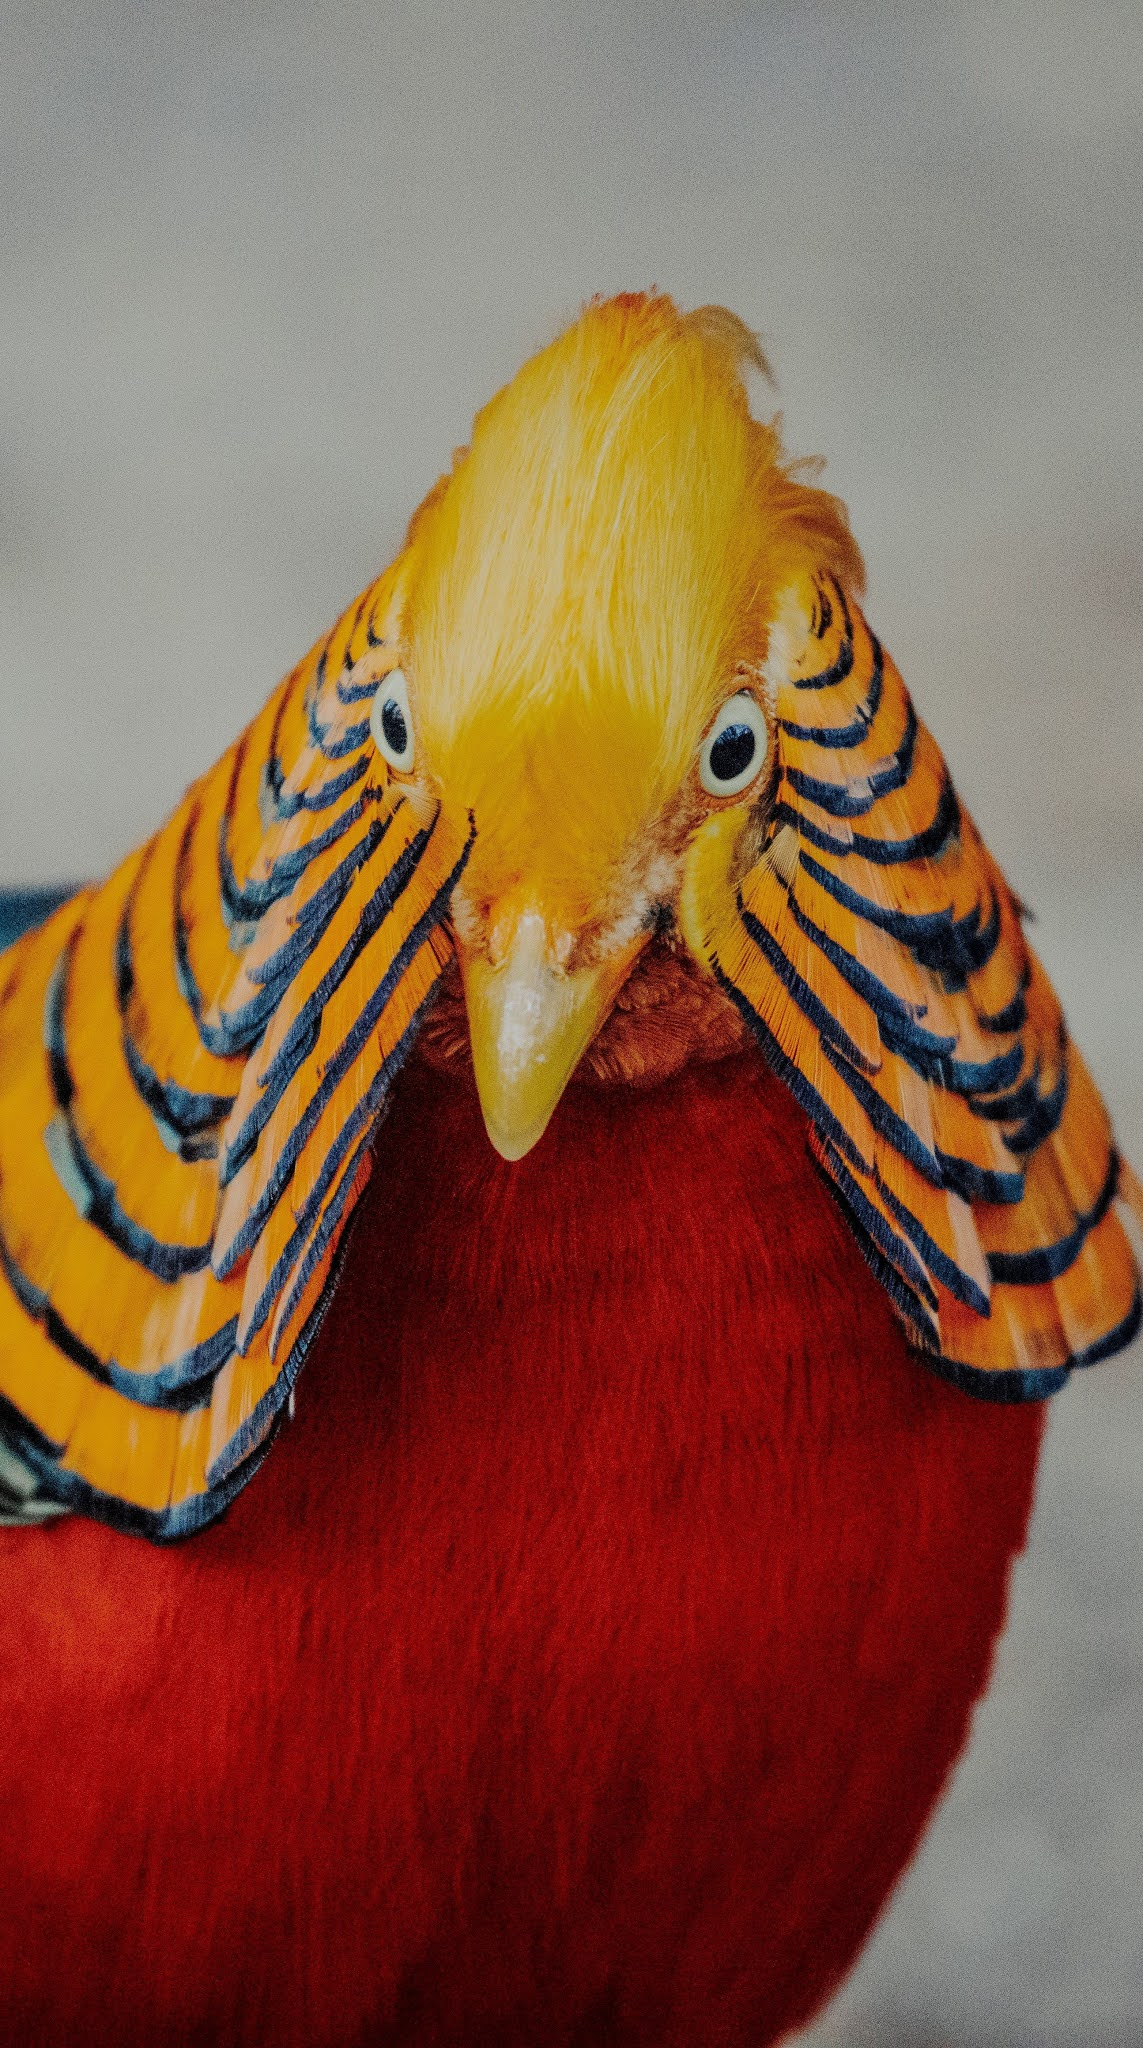 The amazing beauty of a golden pheasant.